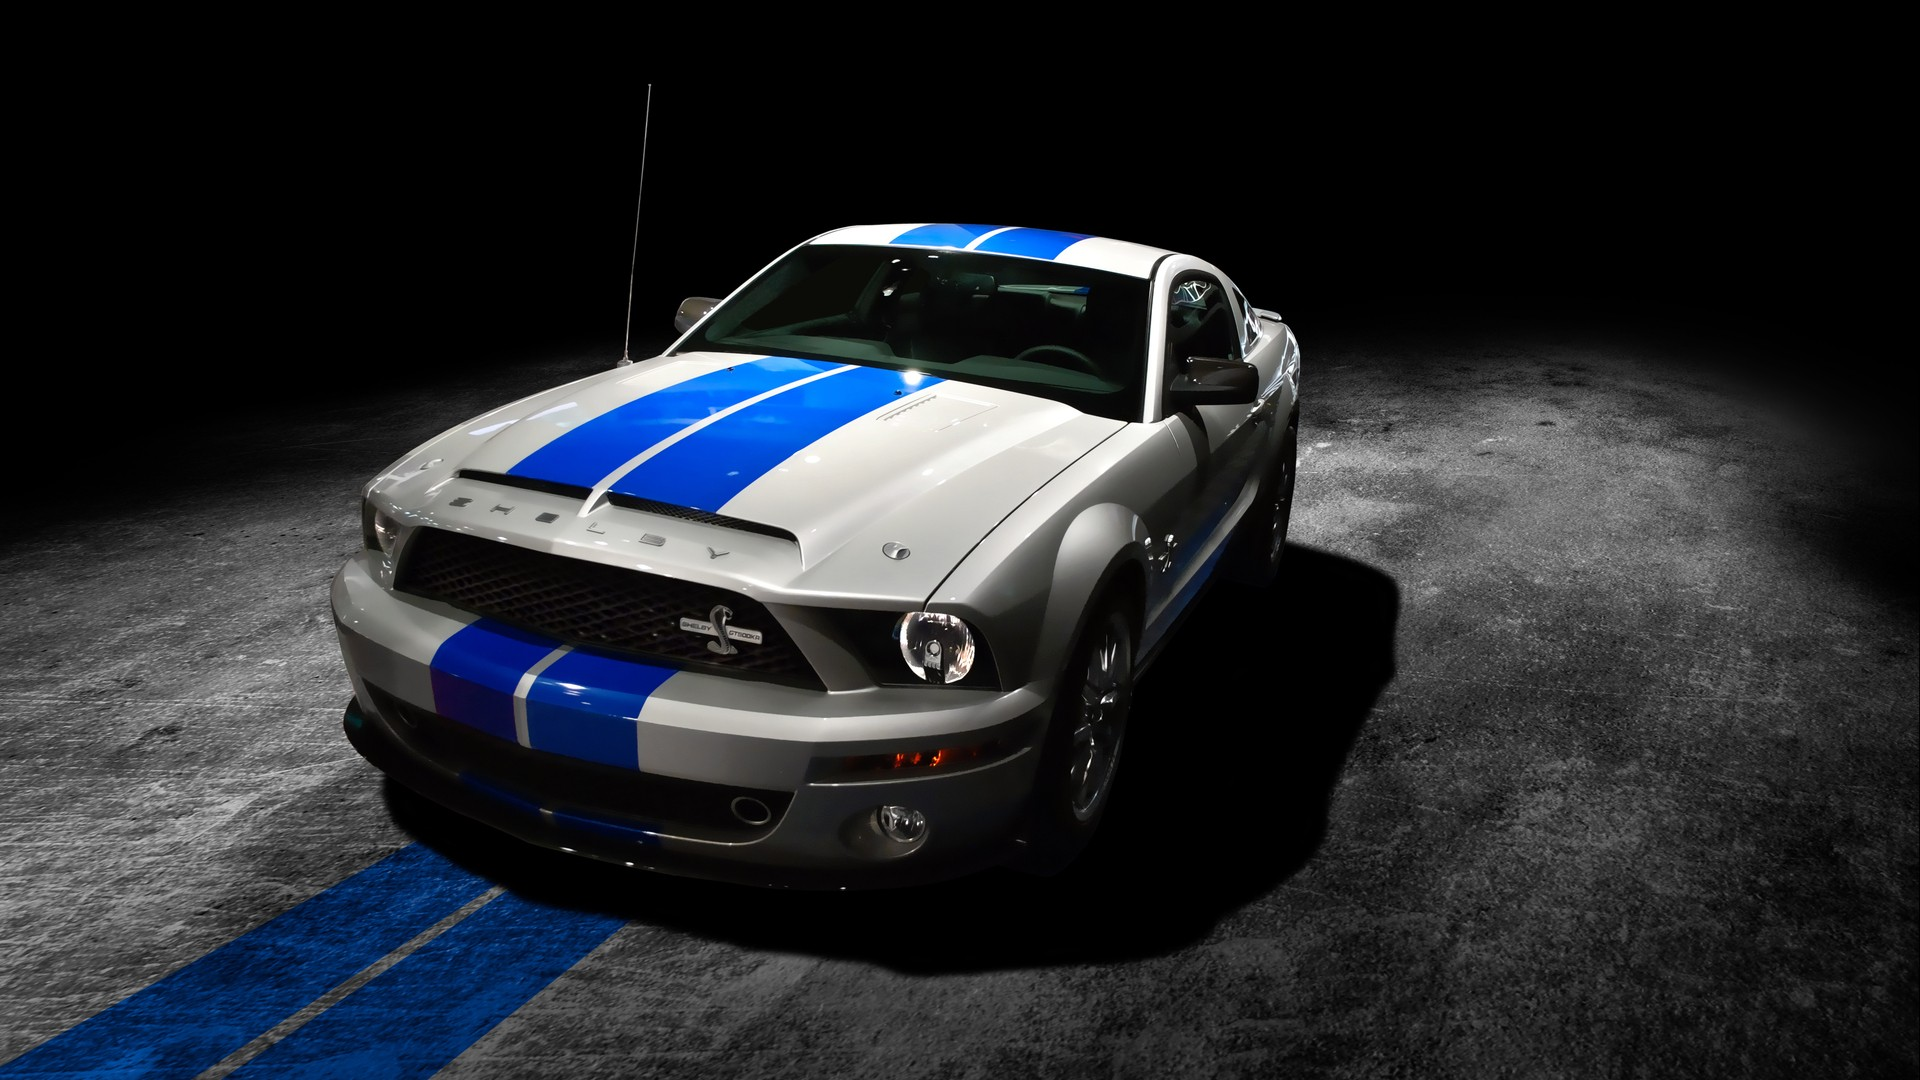 Cars Muscle Wallpaper 1920x1080 Cars, Muscle, Cars, Vehicles, Shelby ...